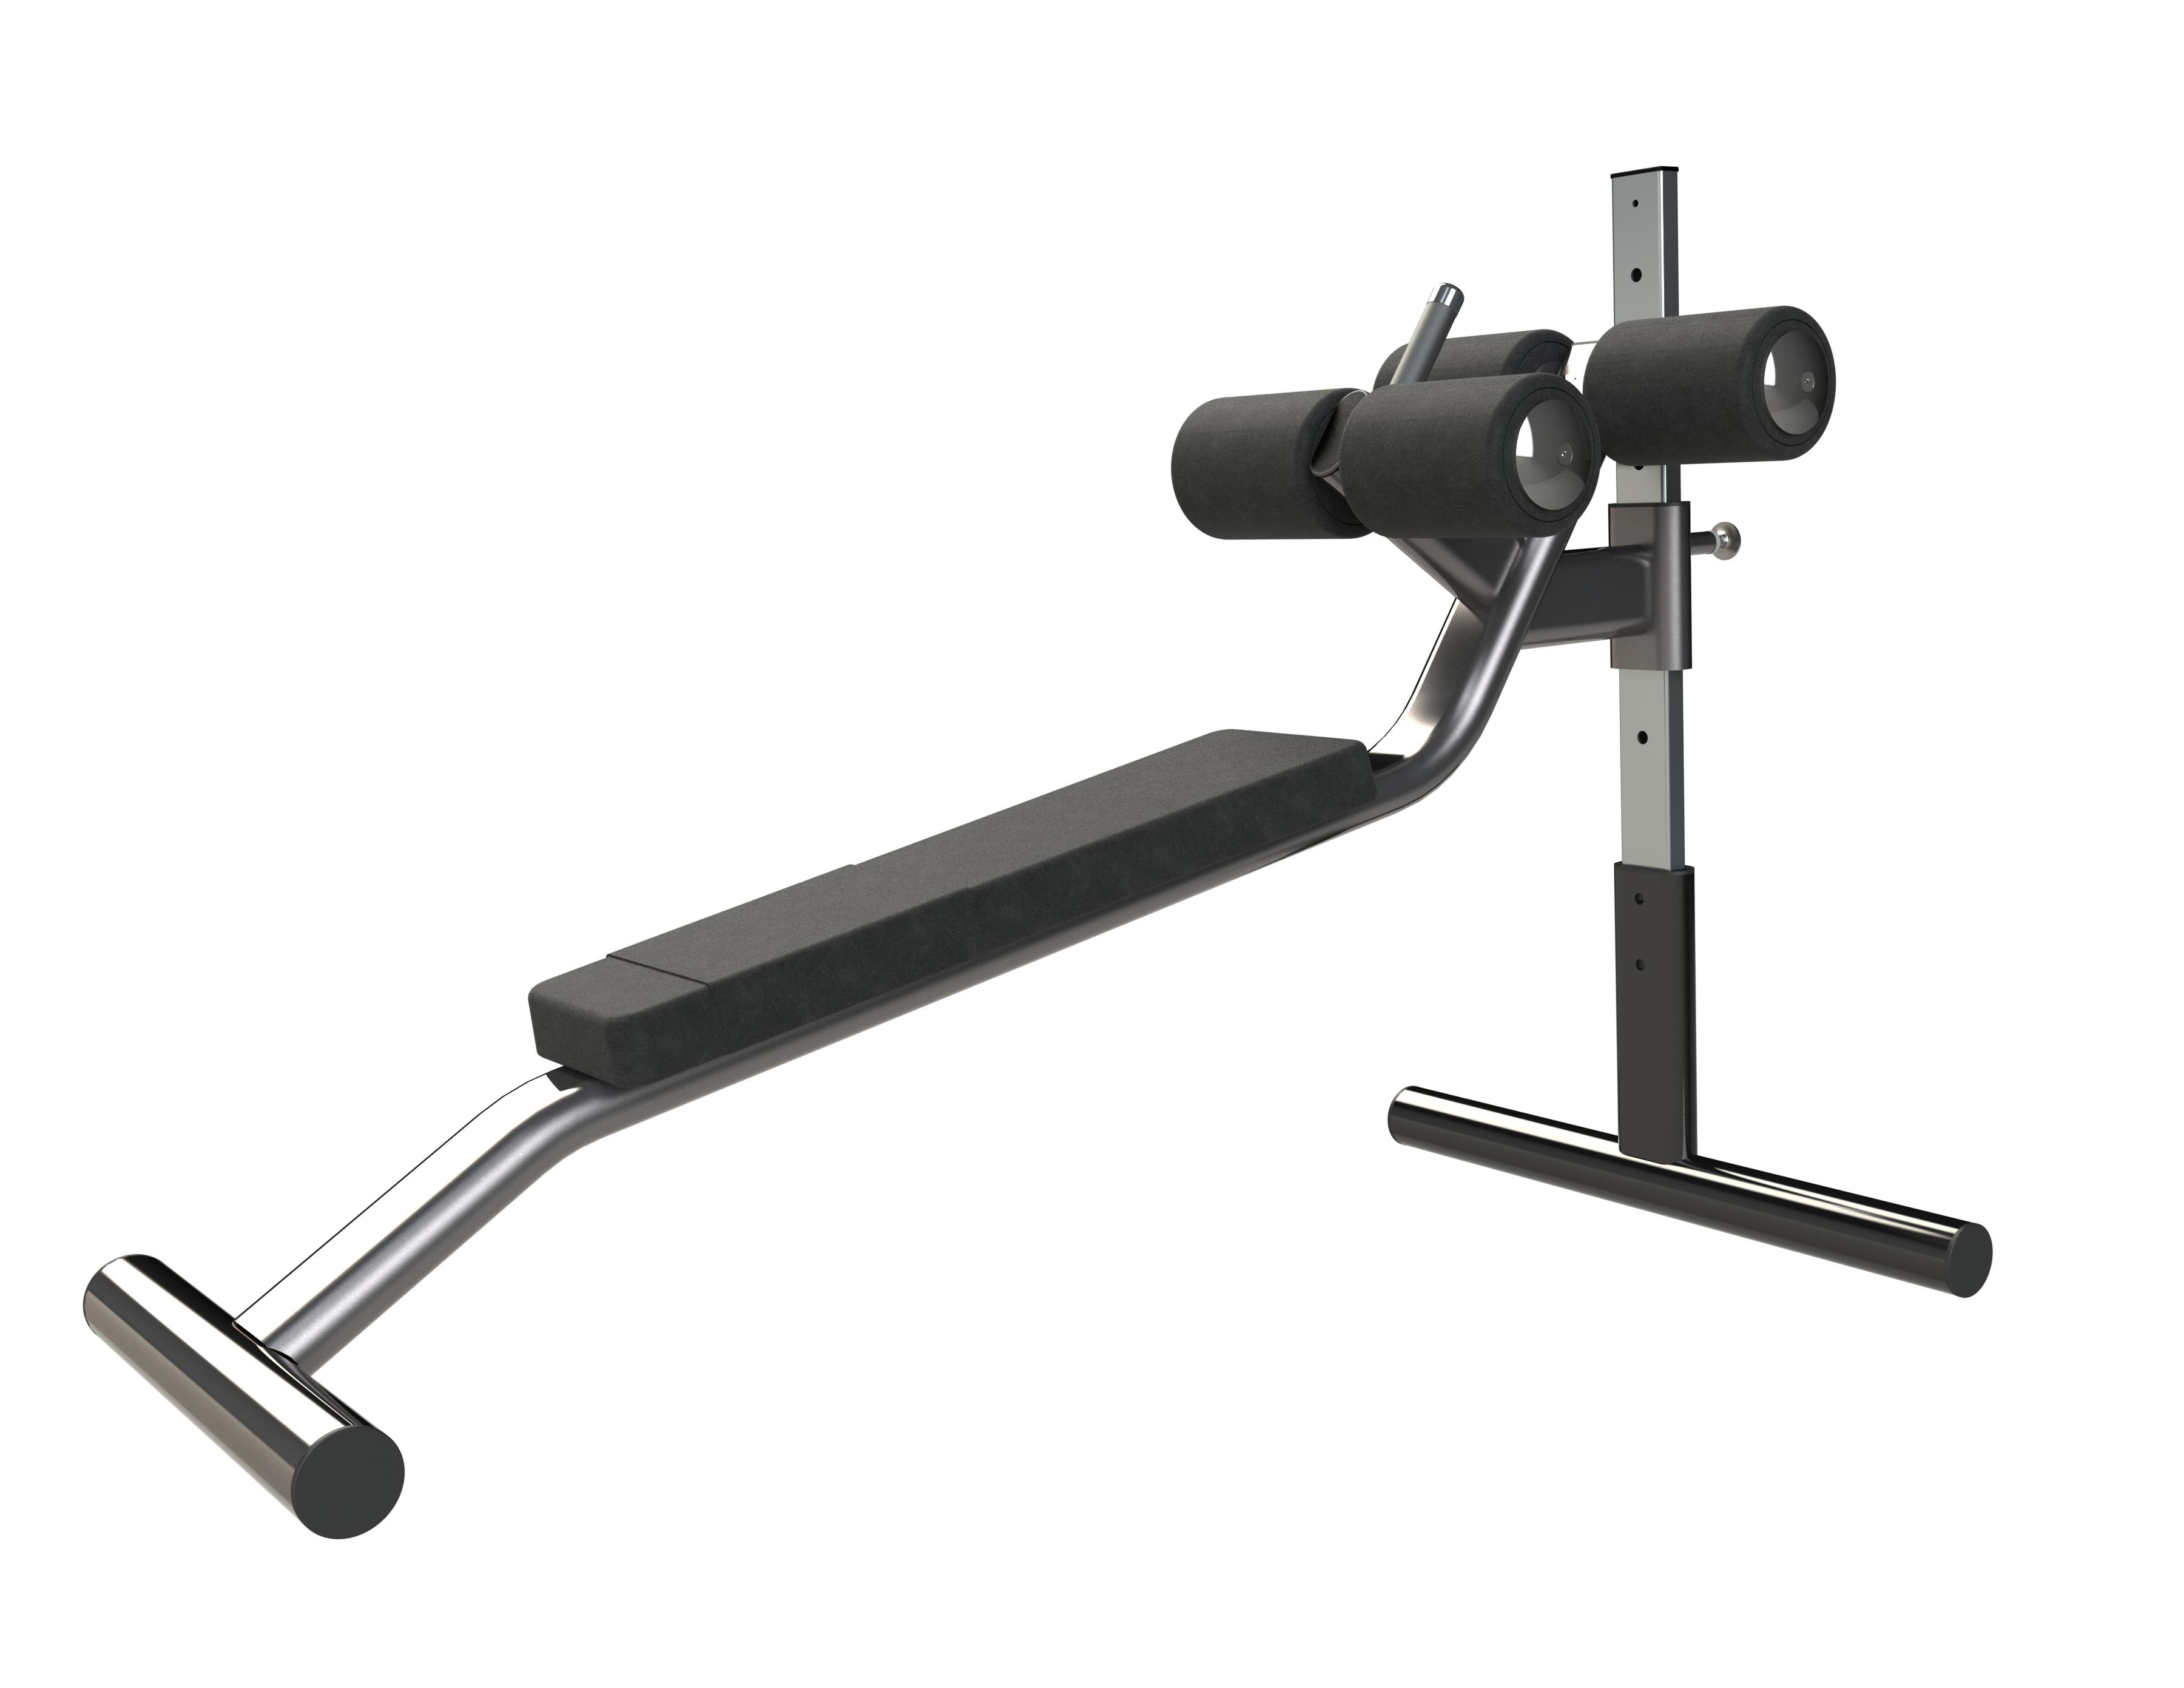 Exigo Adjustable Abdominal Ladder Bench